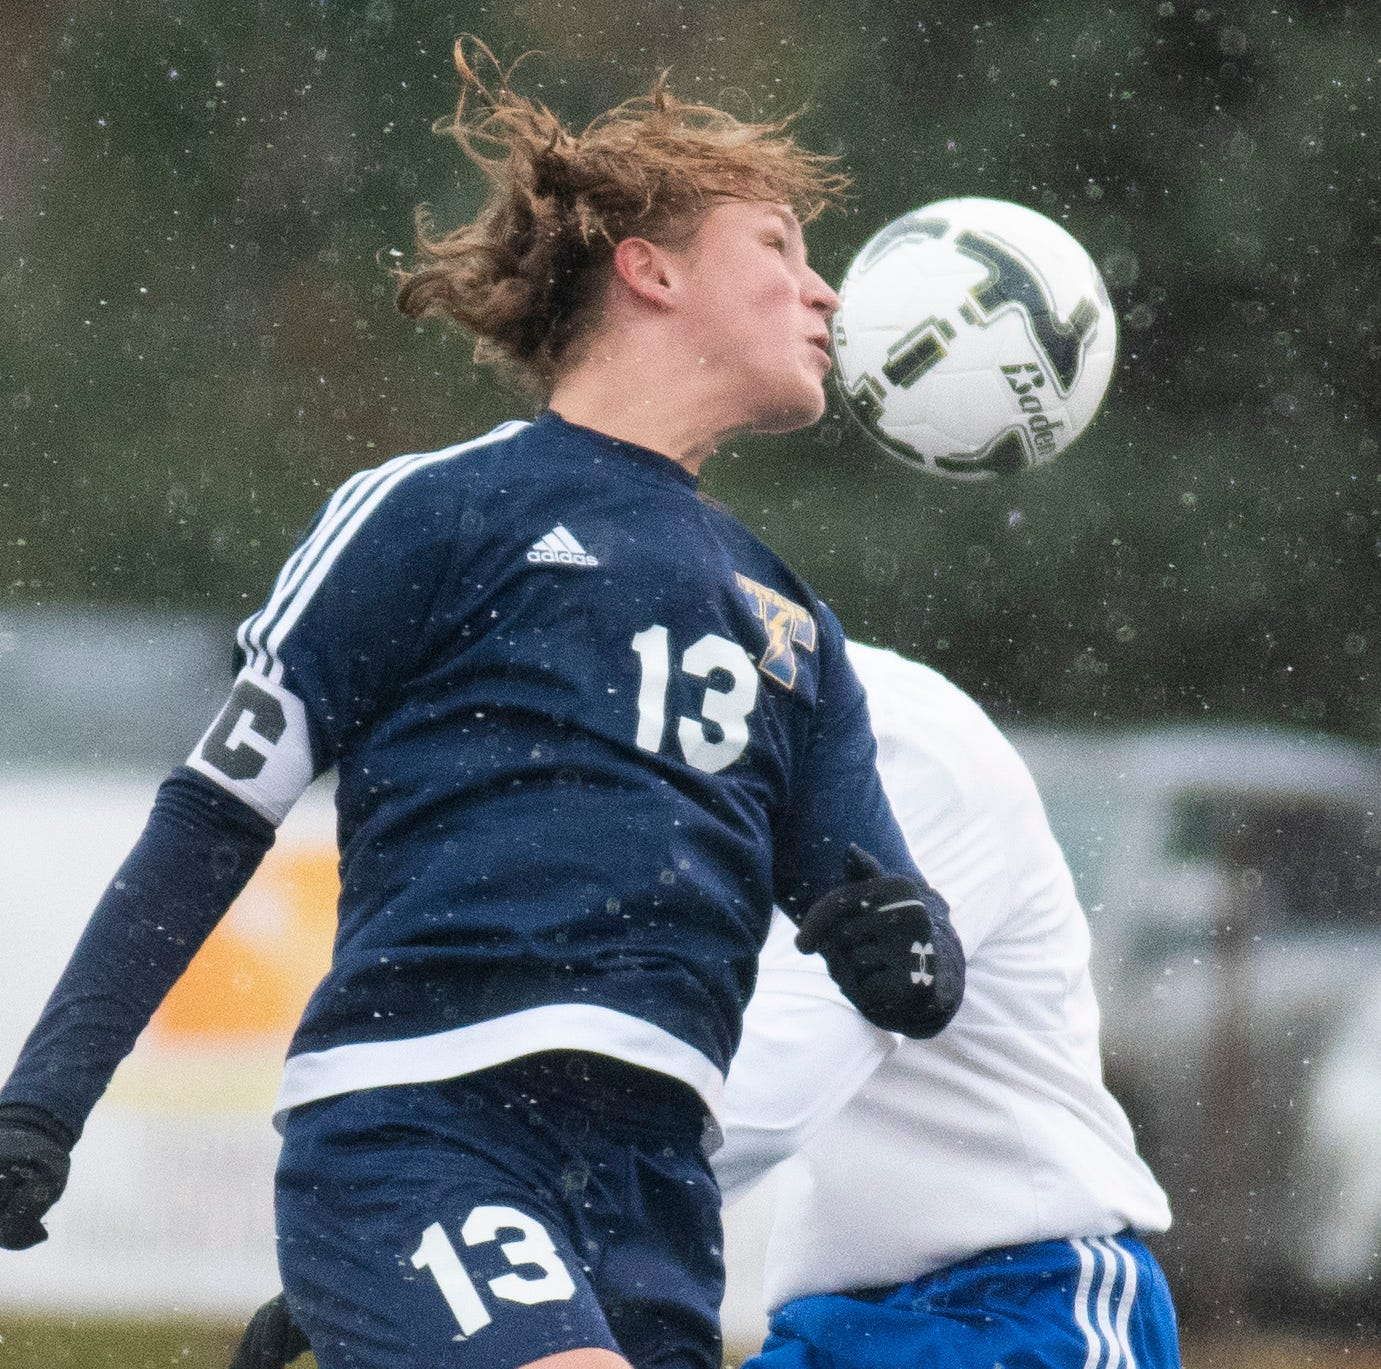 2018 South Dakota High School Soccer Coaches Association All-State teams released